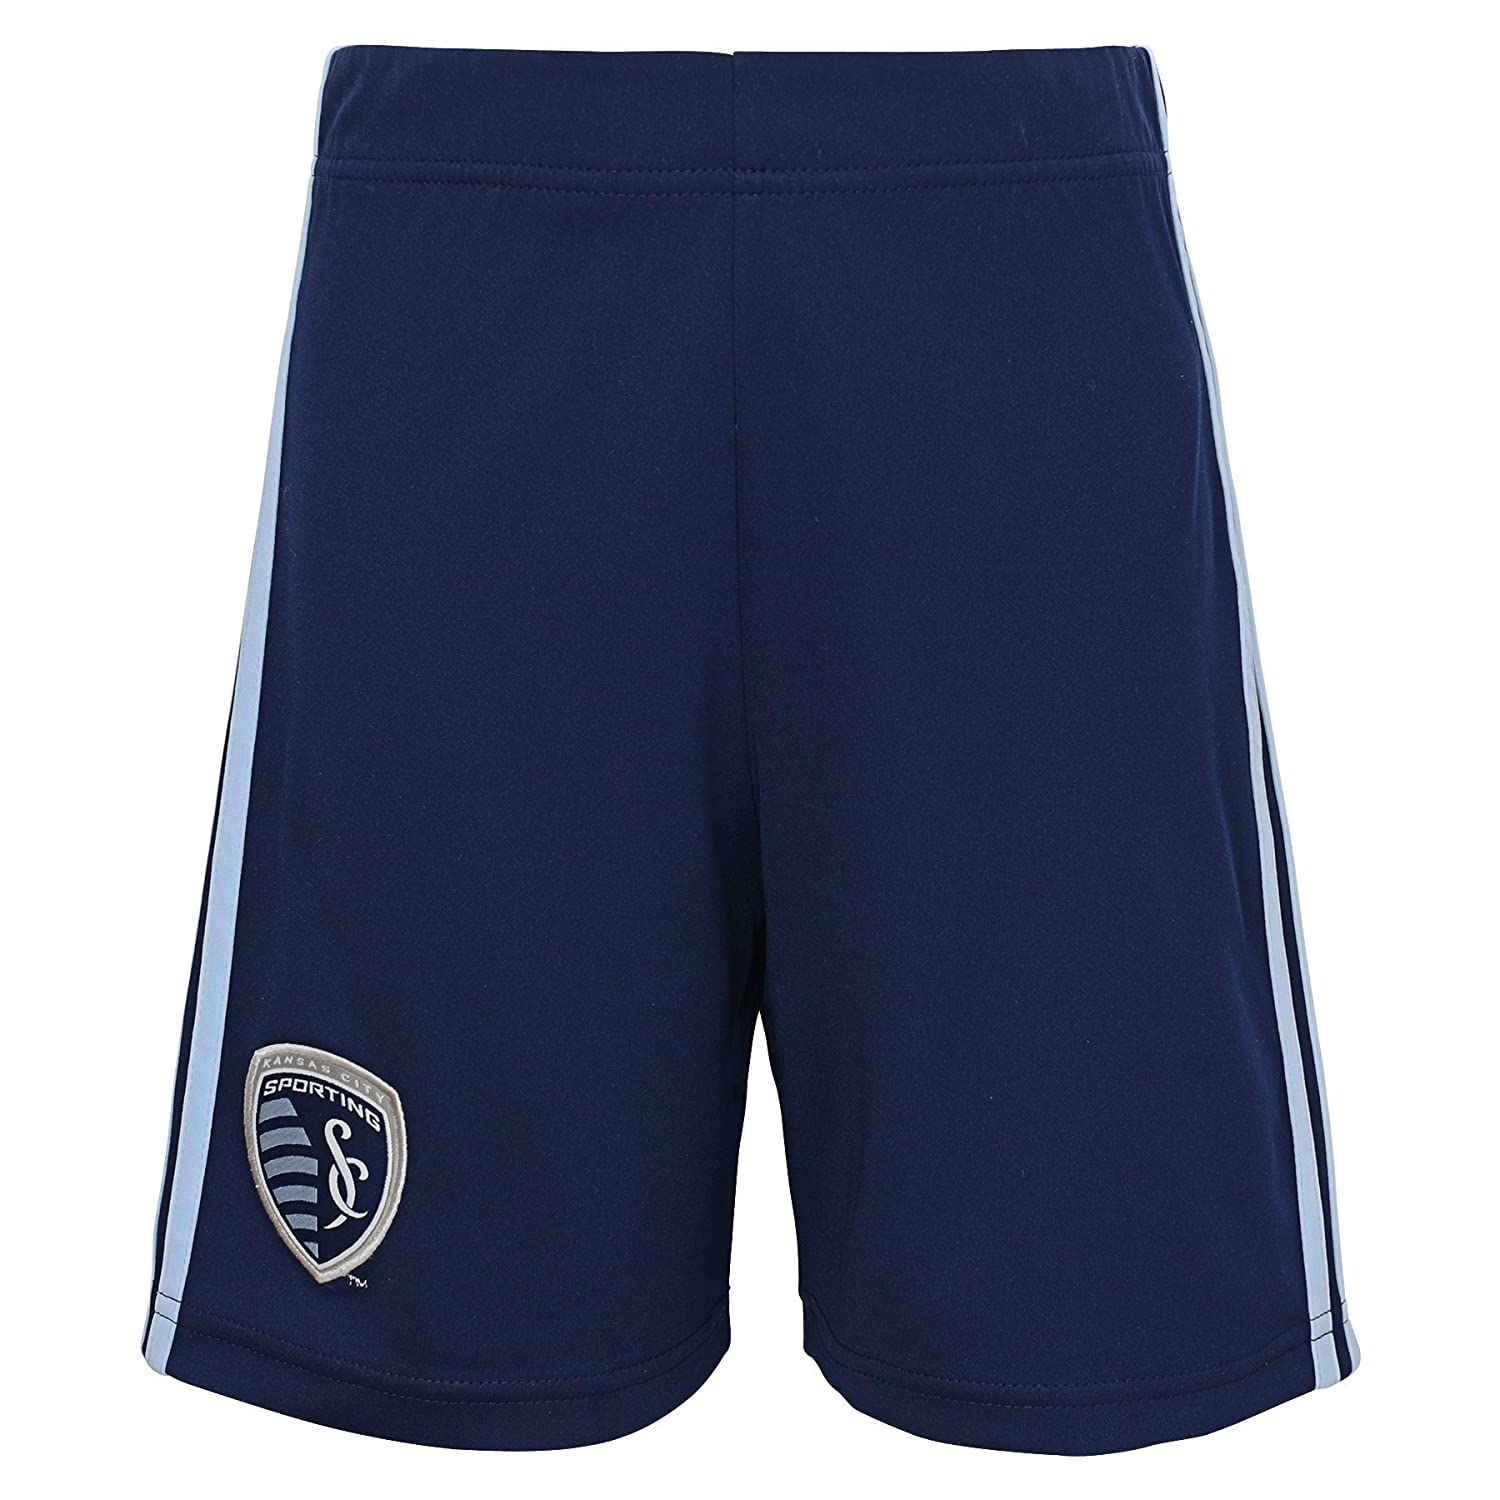 Nike Sportswear Air Max Older Kids' (Boys') Shorts